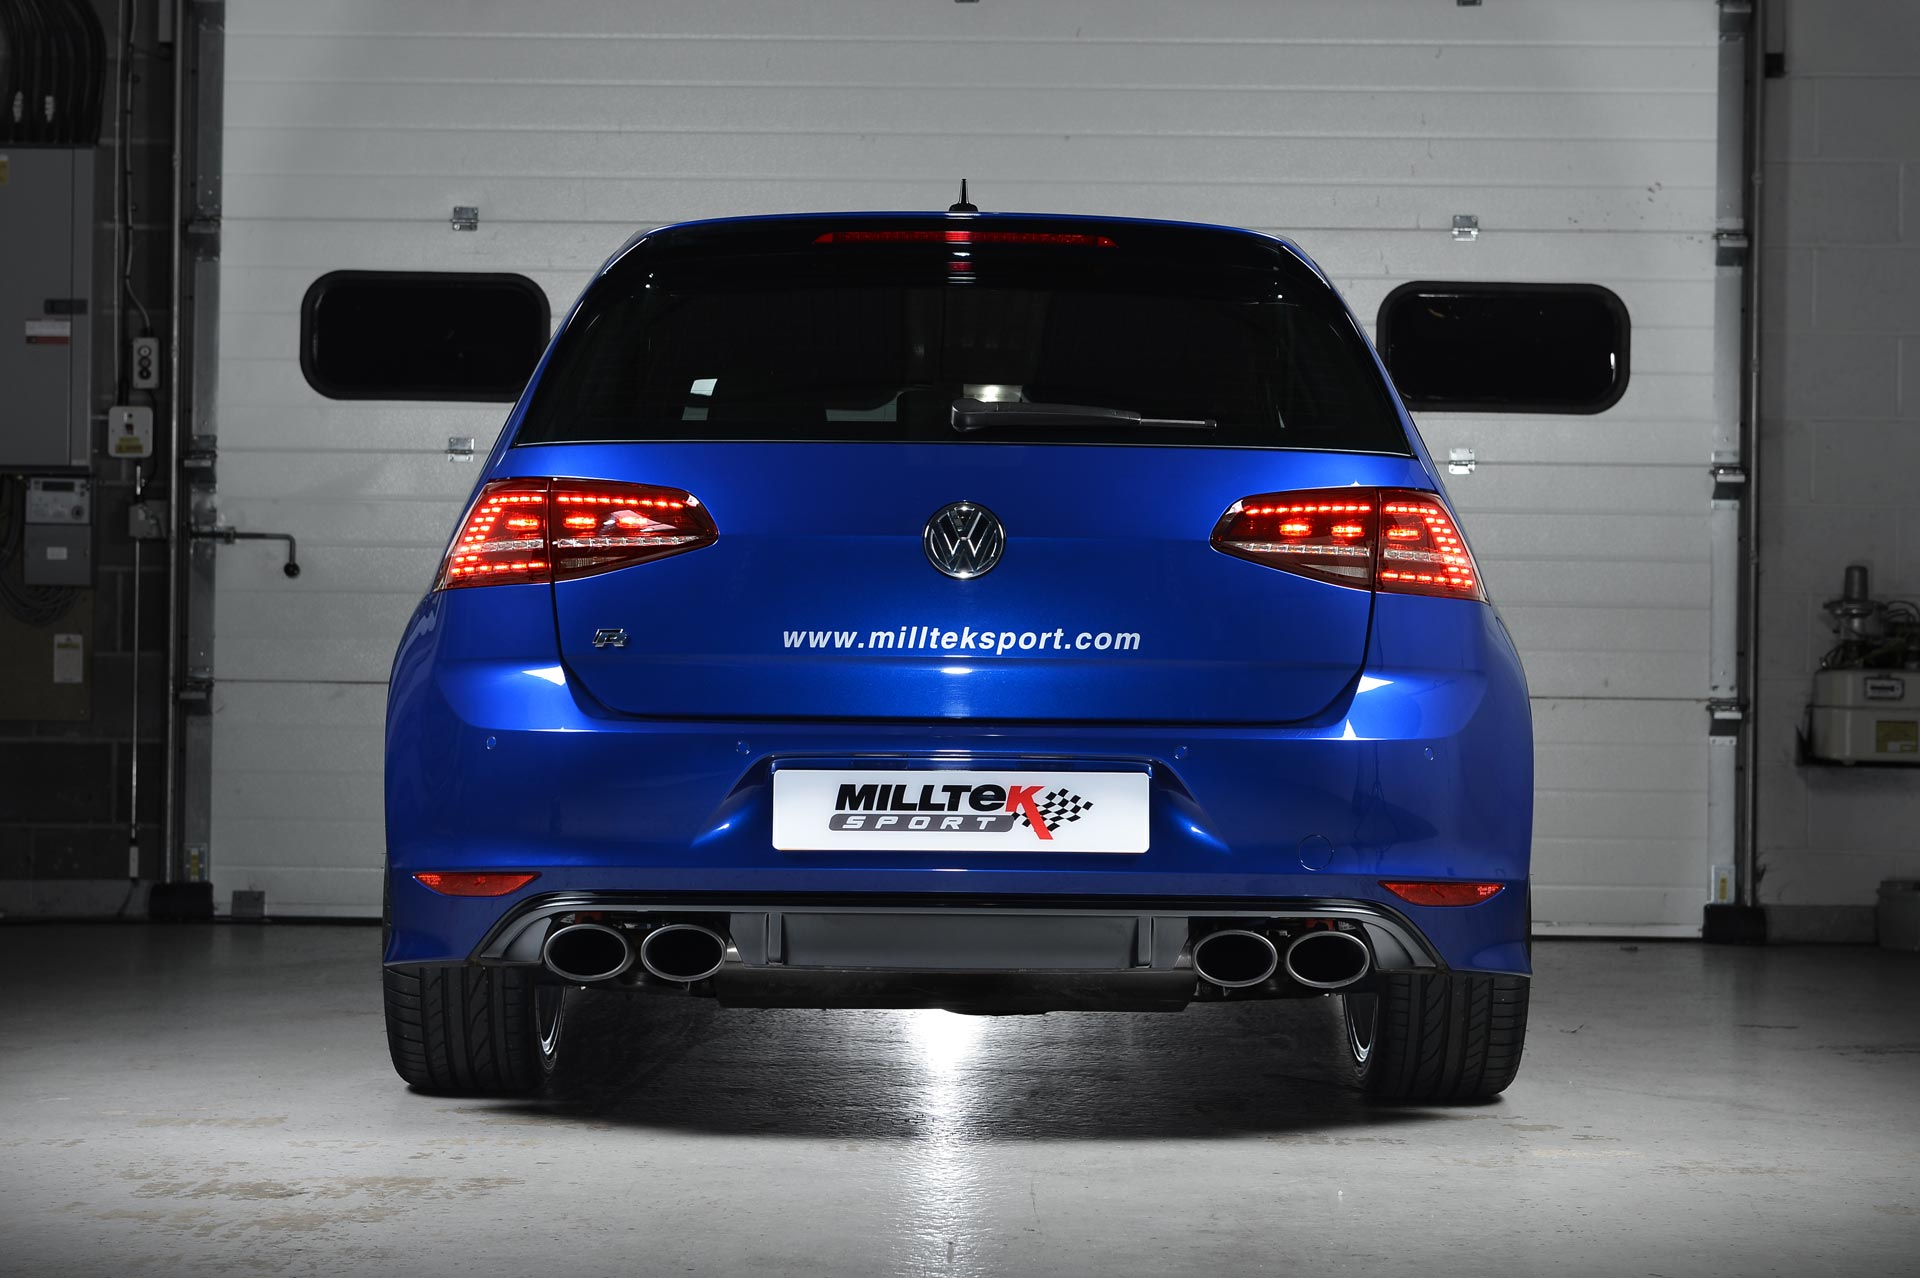 Audi RS3 8v Sportback Milltek Sport Pair Cerakote Black Oval Exhaust Tips Only